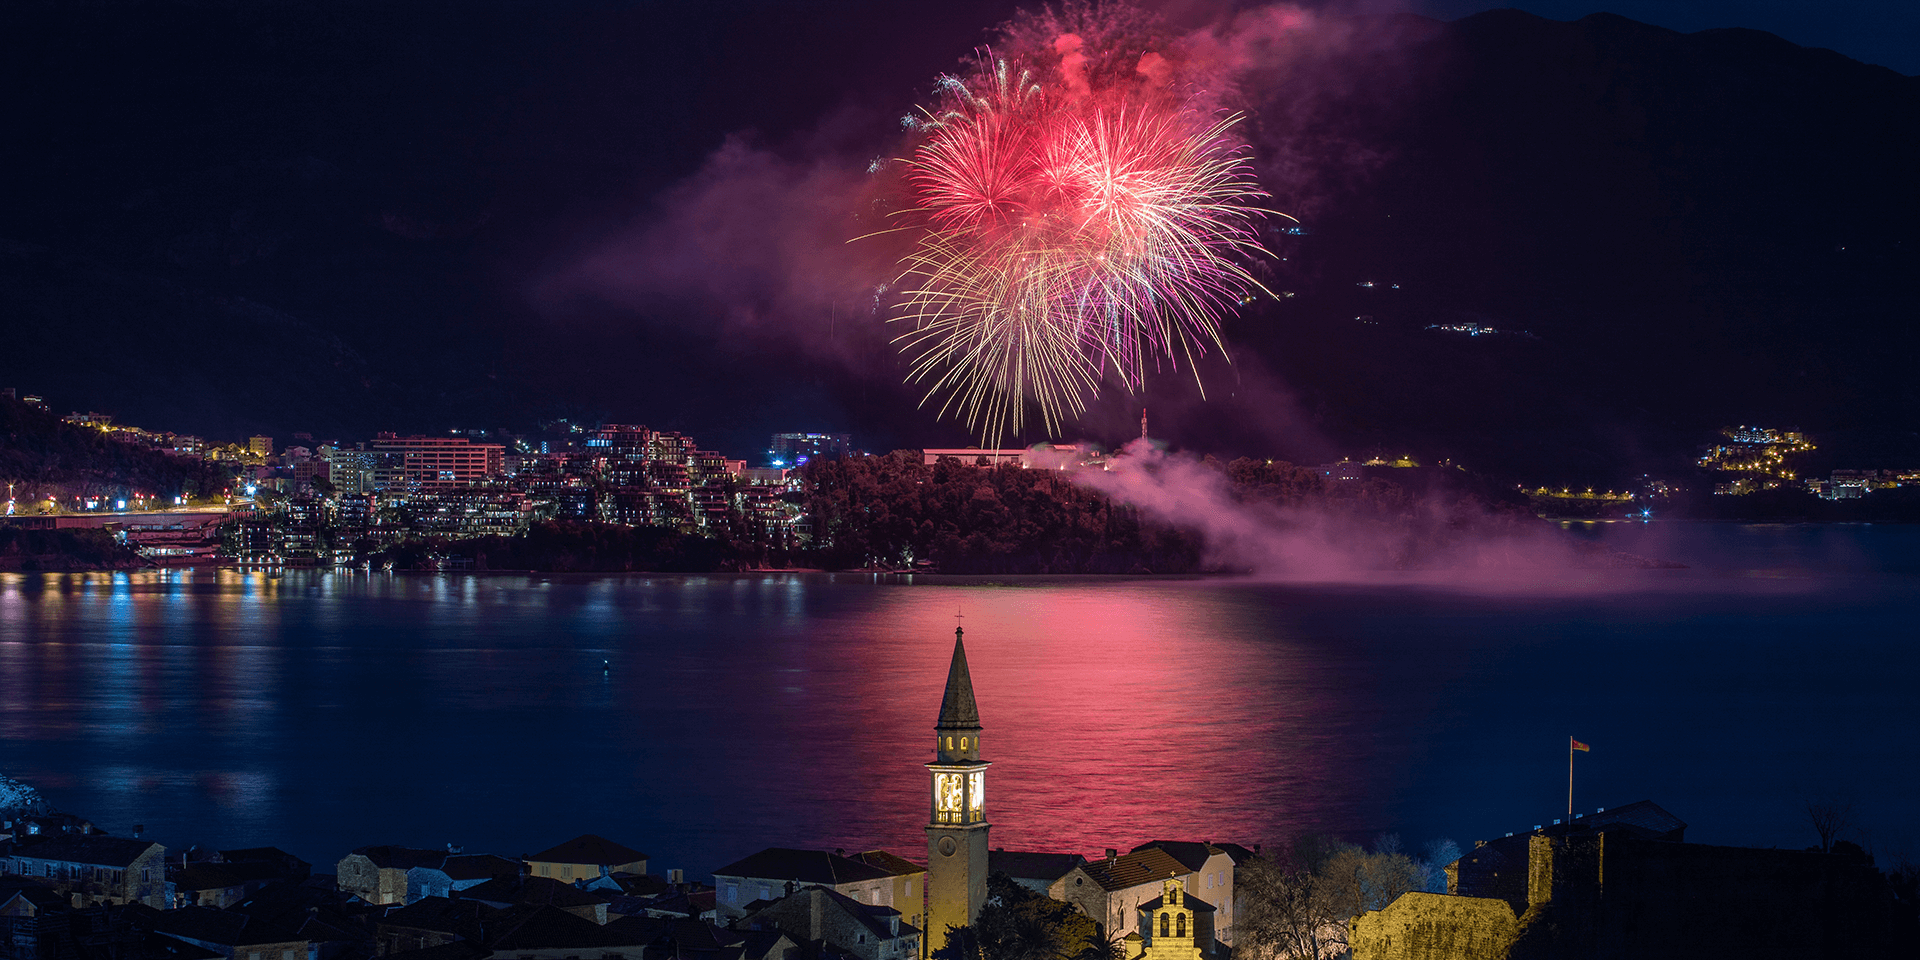 budva-apartments budva-events budva-restaurants budva-Montenegro budva